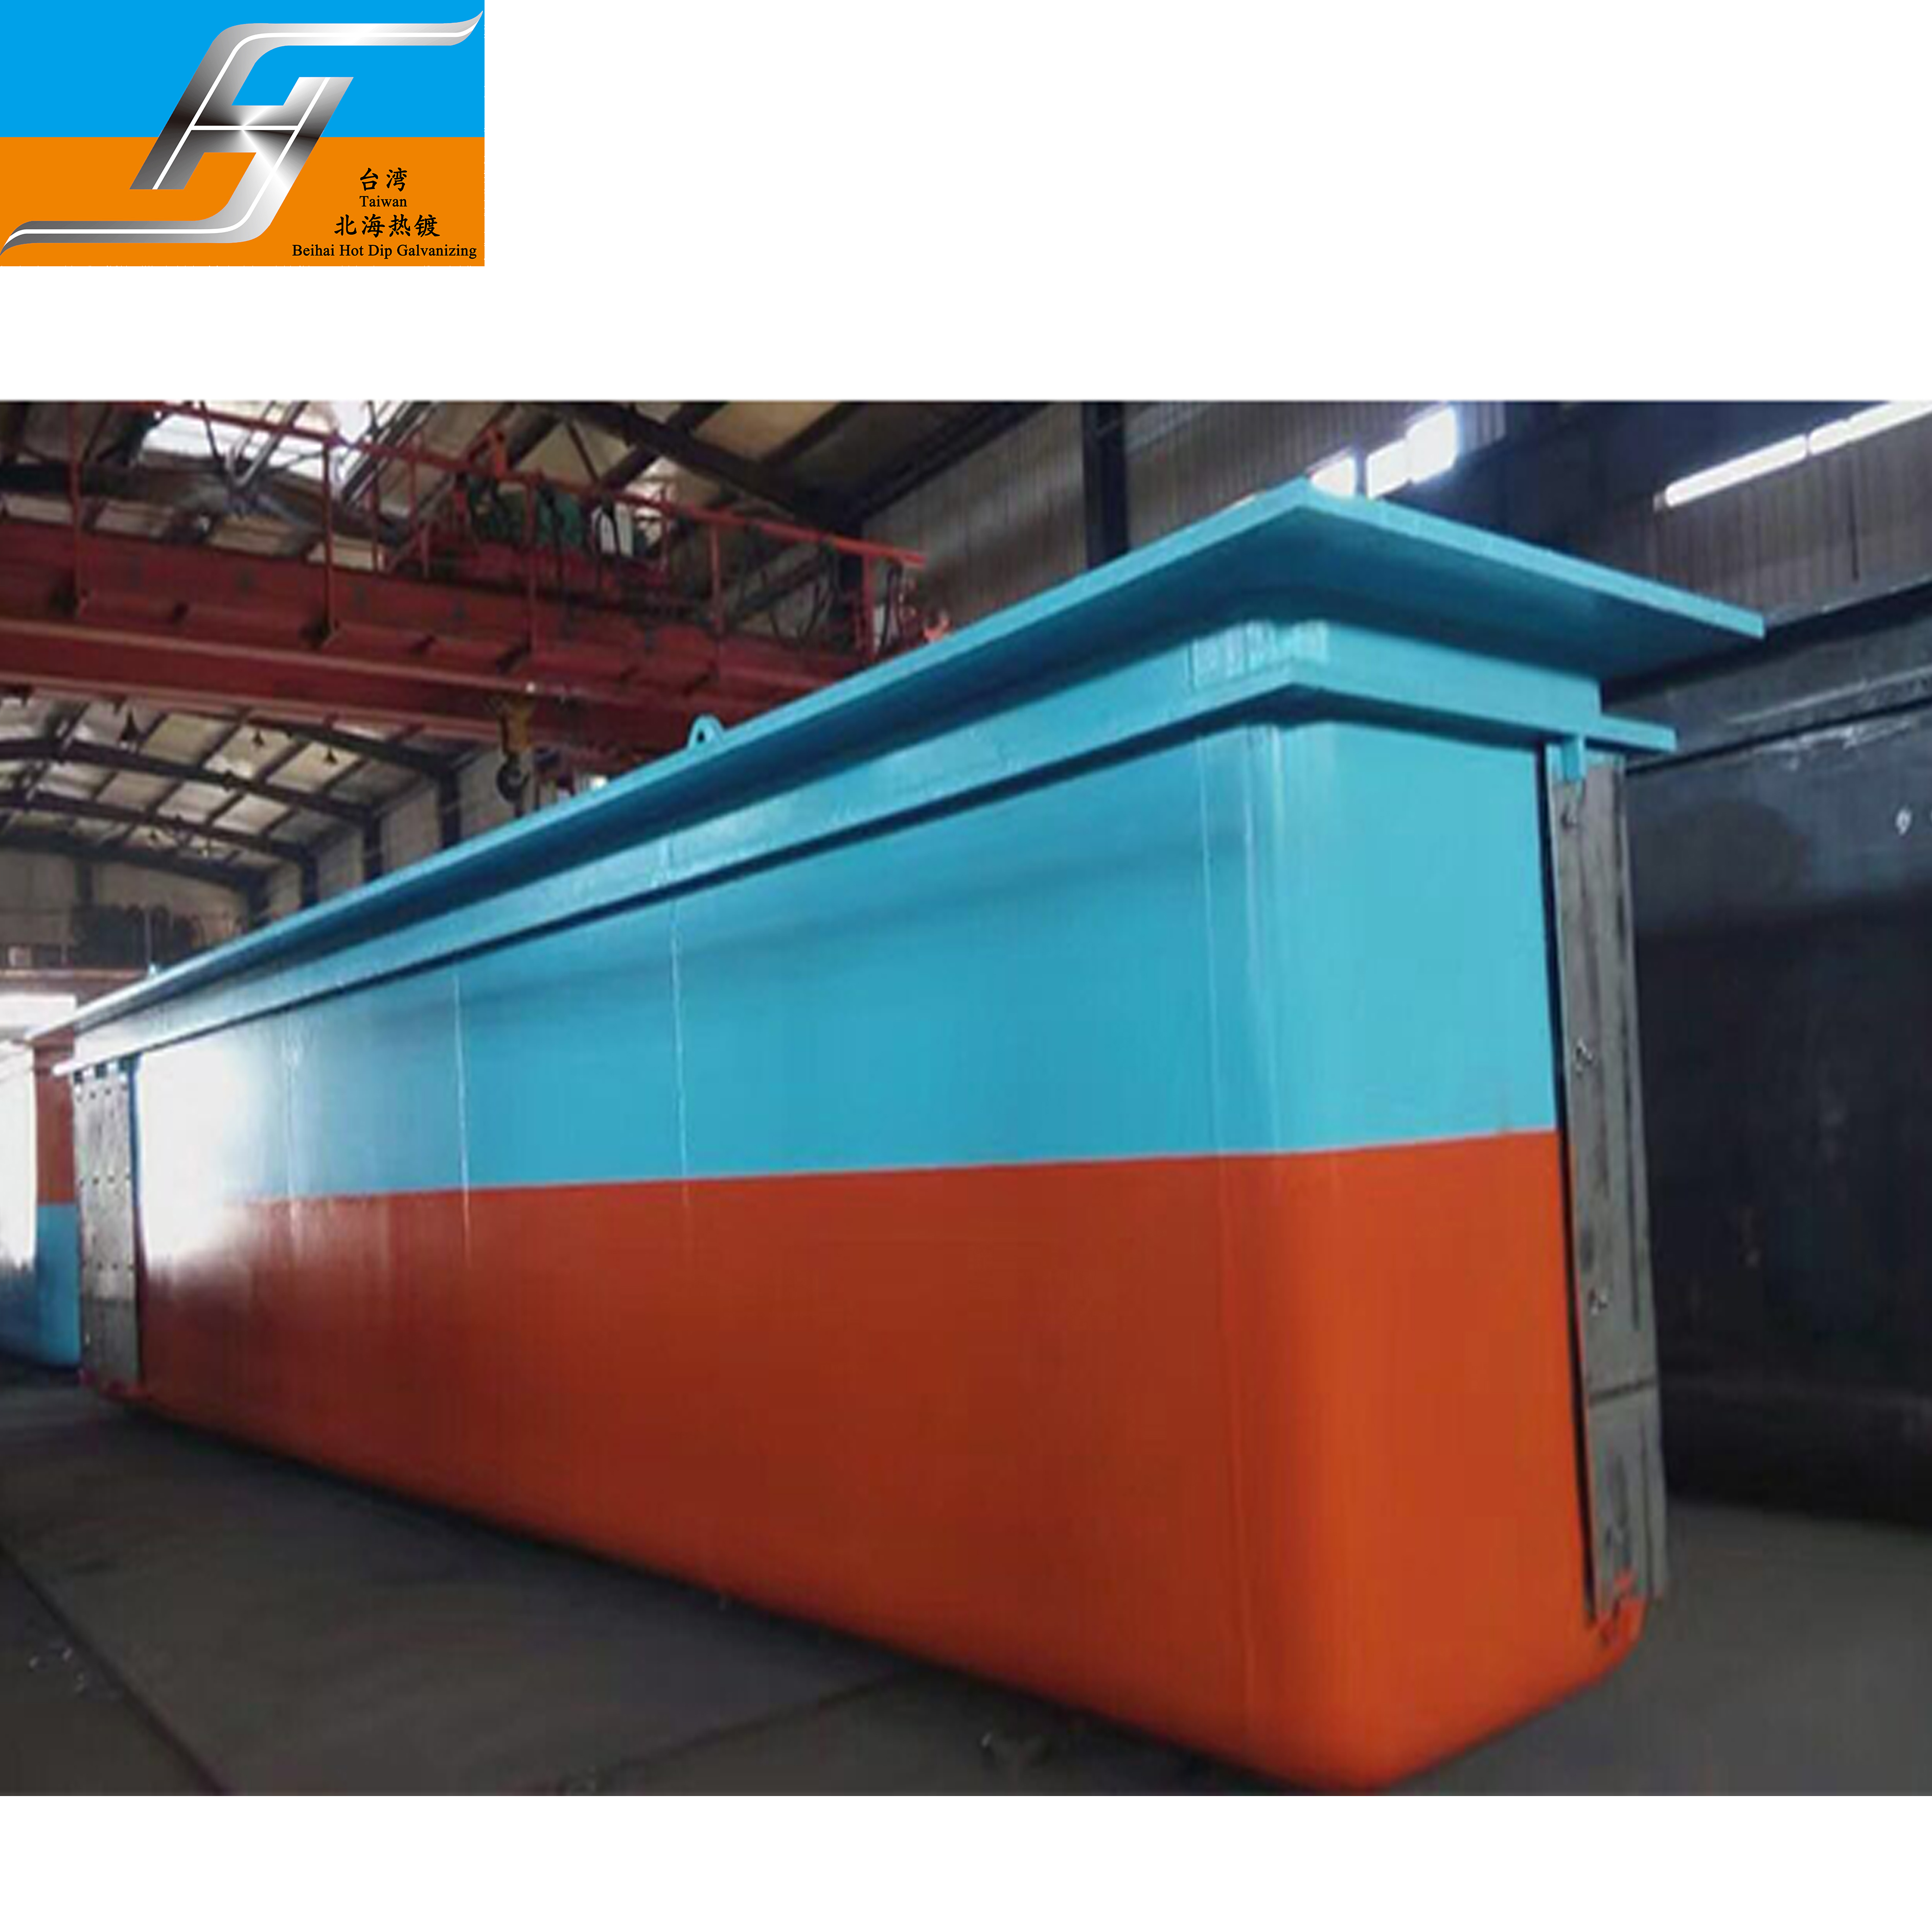 Hot dip galvanizing line equipment furnace with automatic combustion system